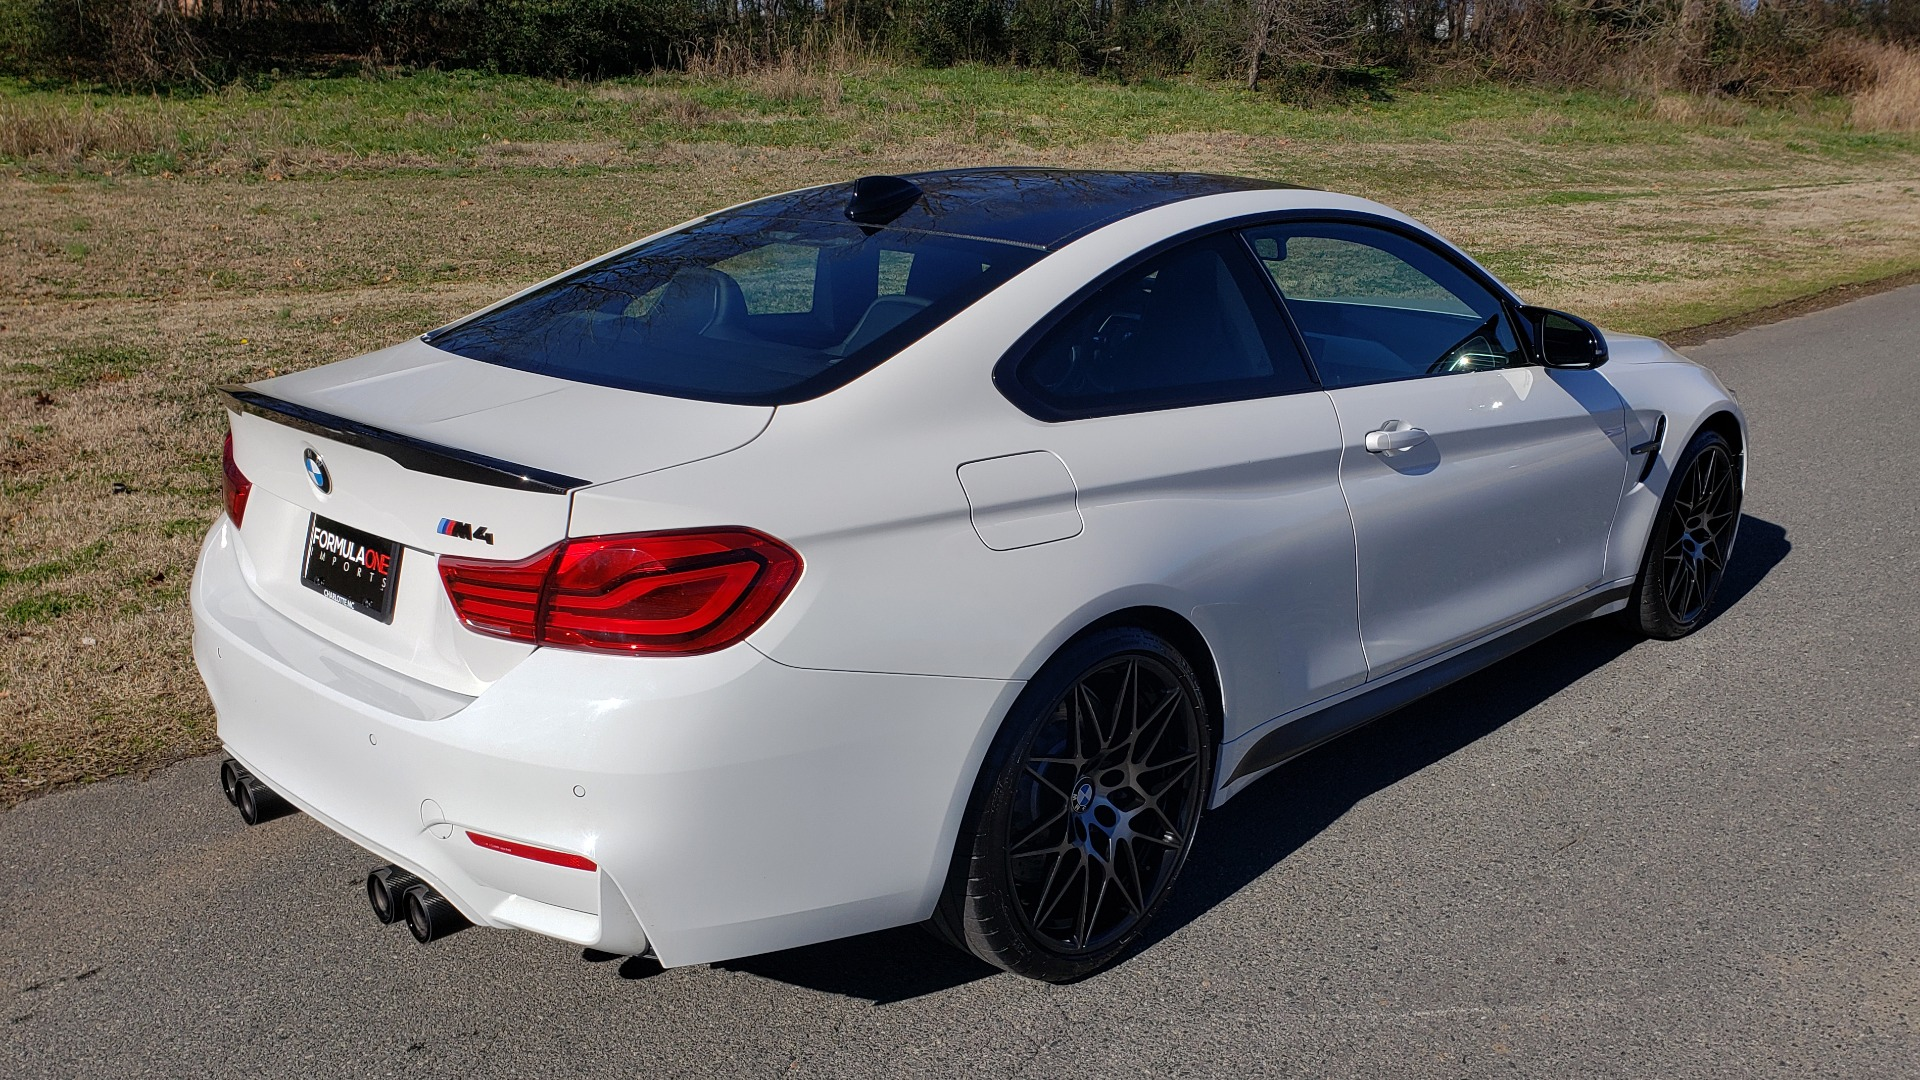 Used 2018 BMW M4 COMP PKG / EXEC / M-DRIVER / PARK CNTRL / ACTIVE BLIND SPOT for sale Sold at Formula Imports in Charlotte NC 28227 7